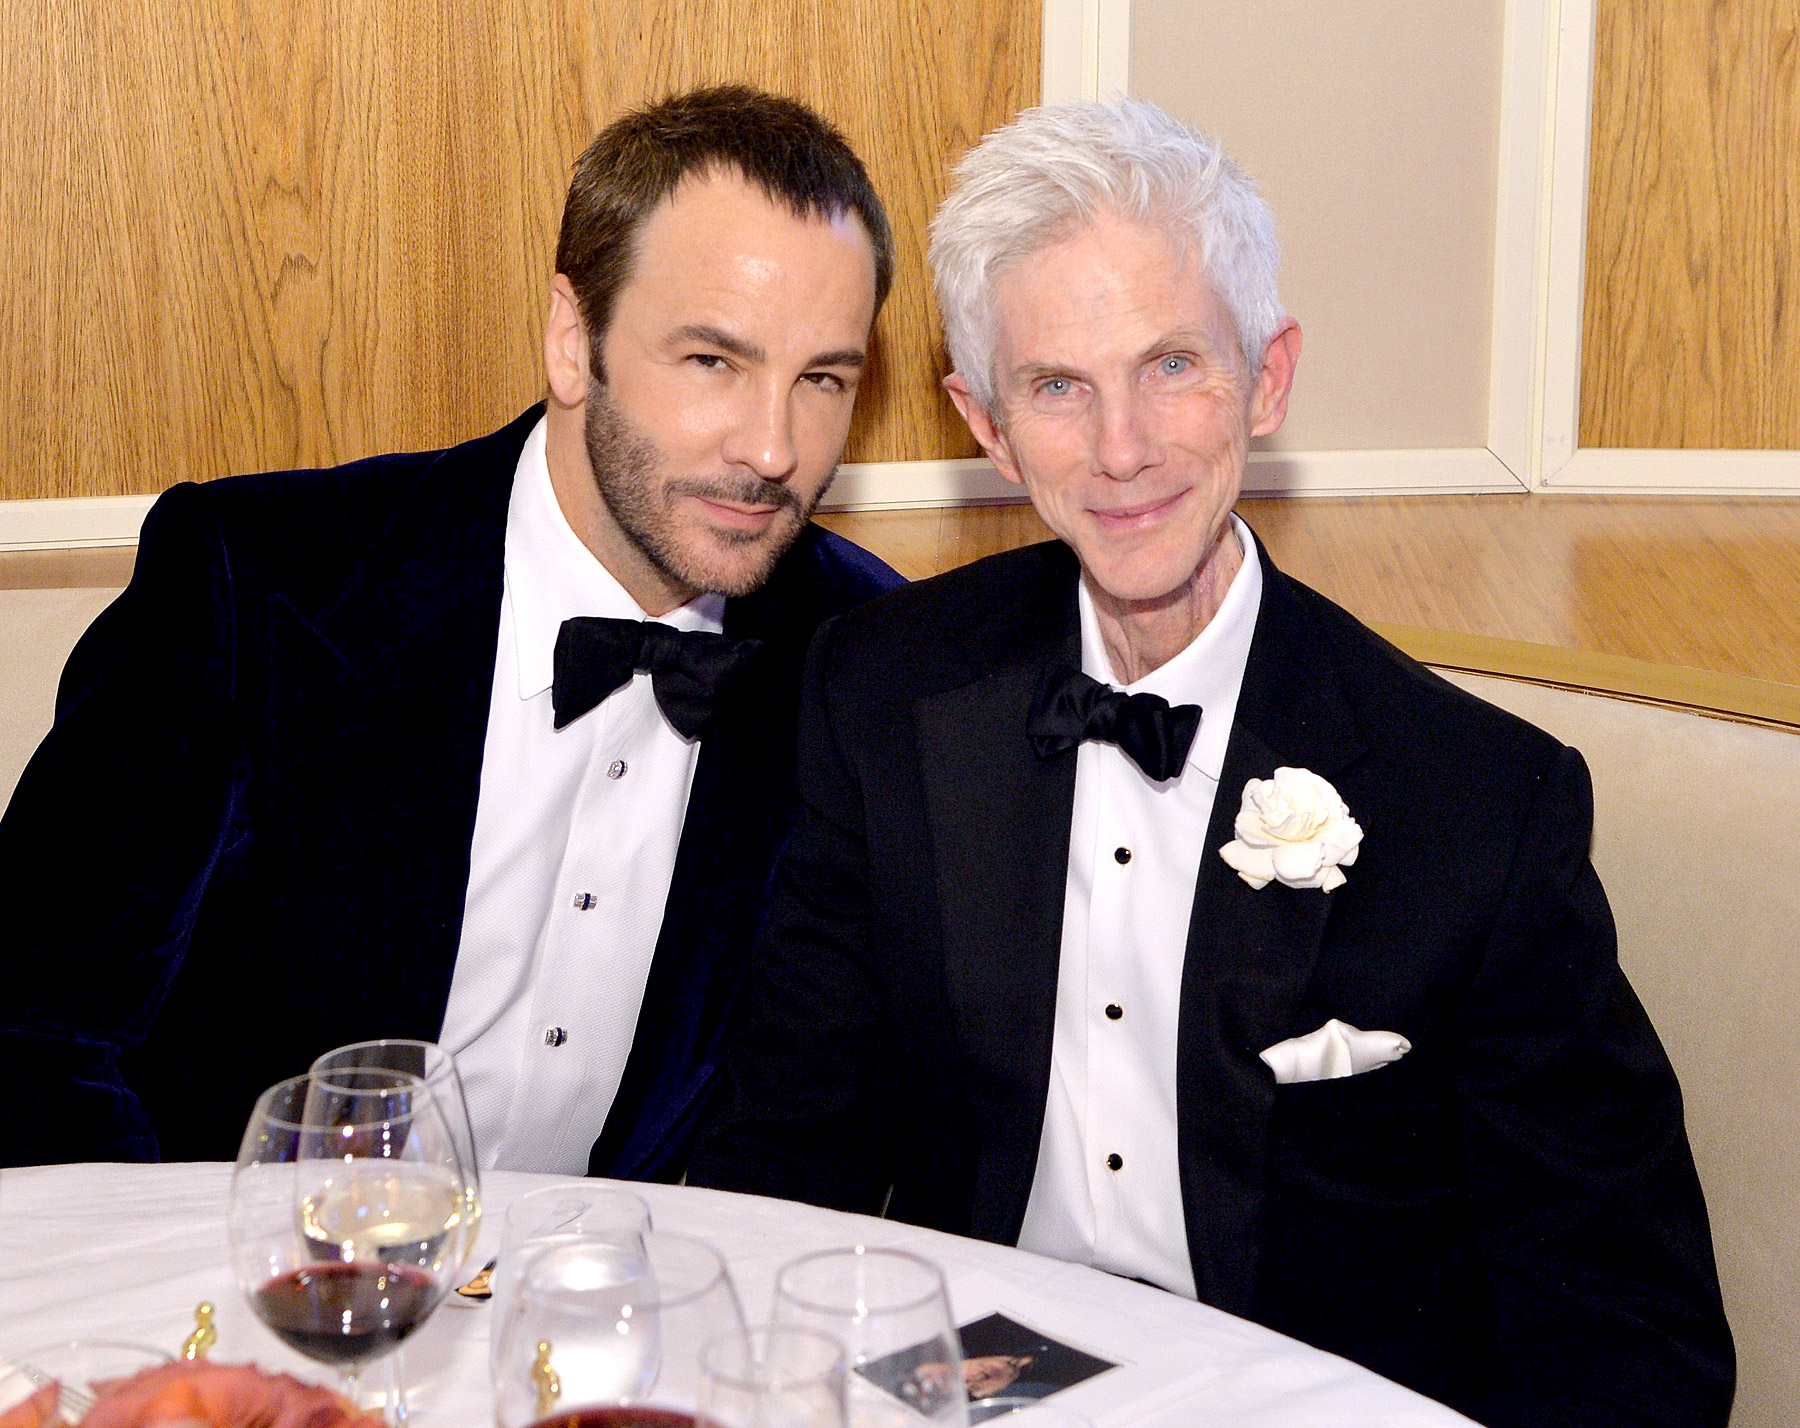 1396972461_tom-ford-richard-buckley-married-zoom